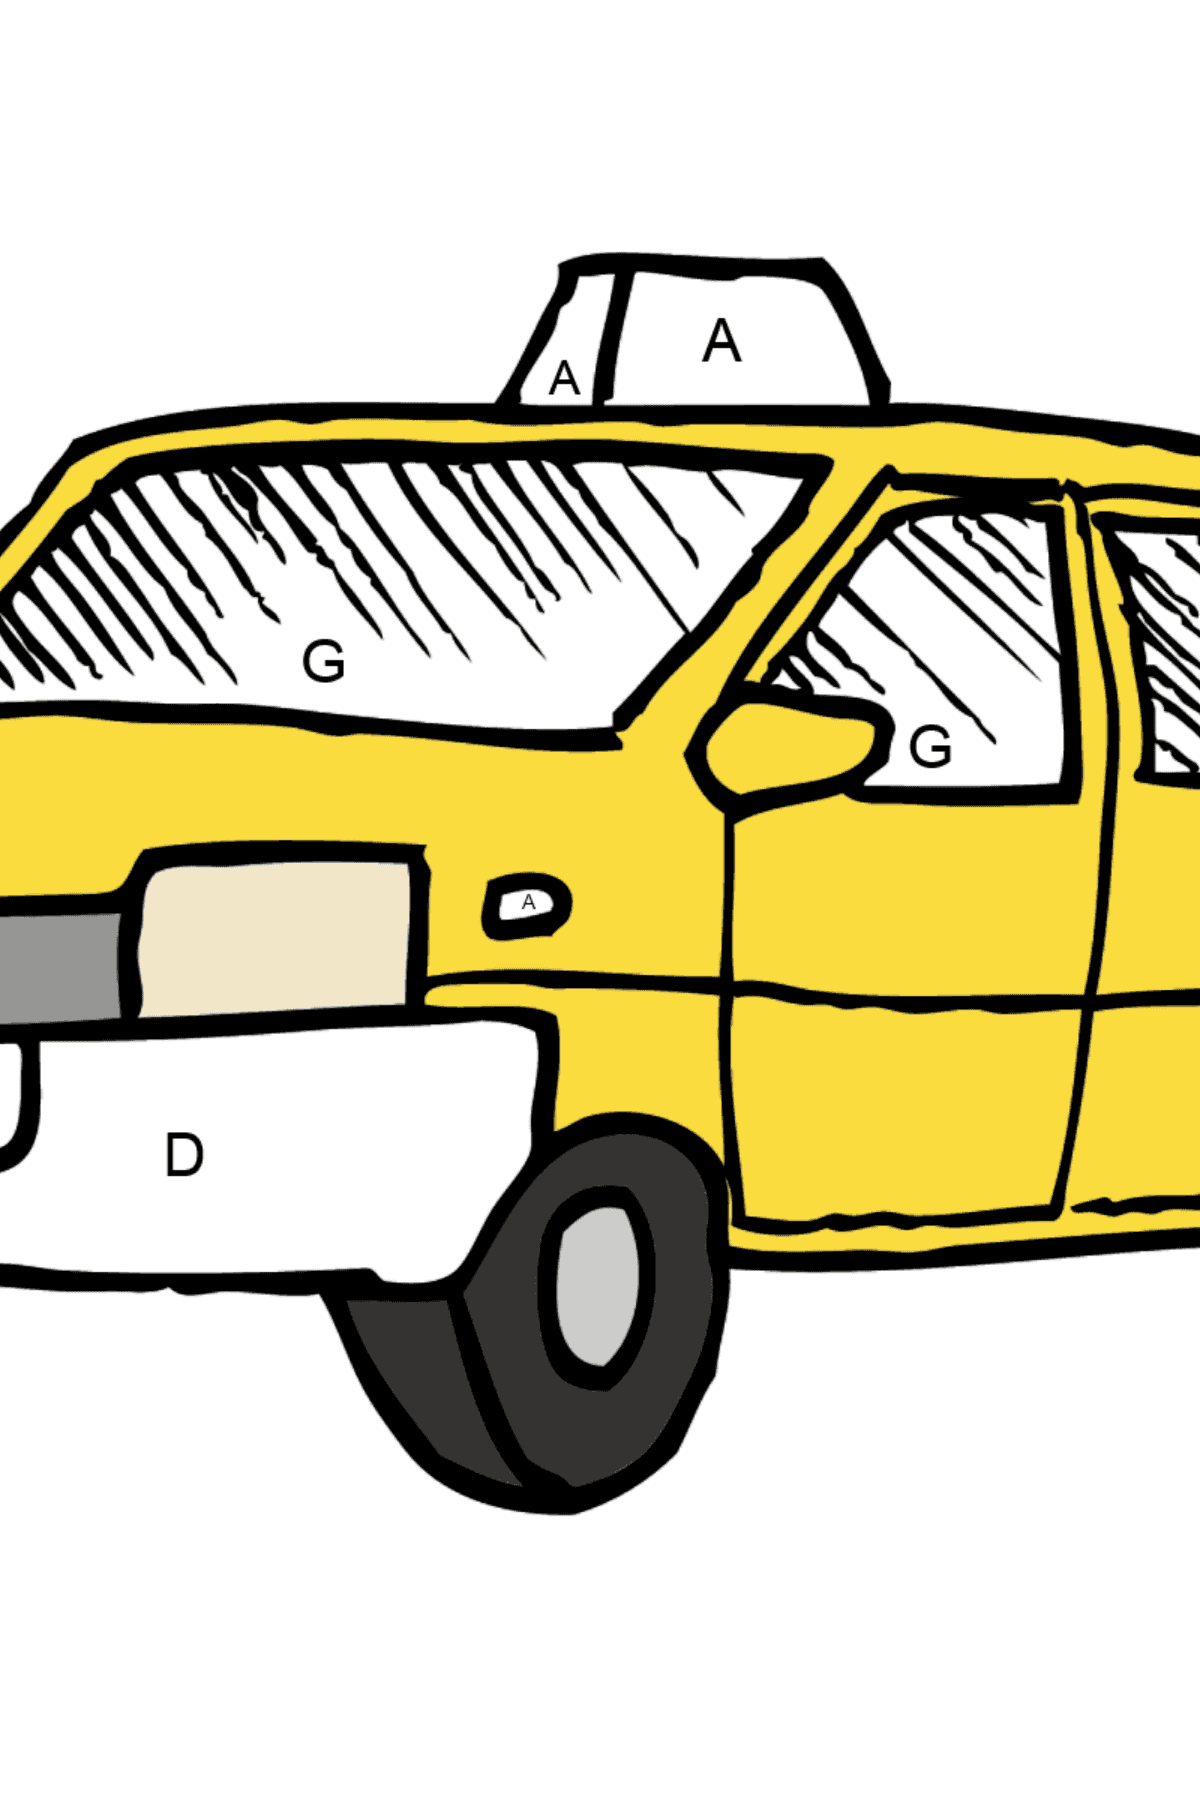 Coloring Page - A Yellow Taxi - Coloring by Letters for Kids